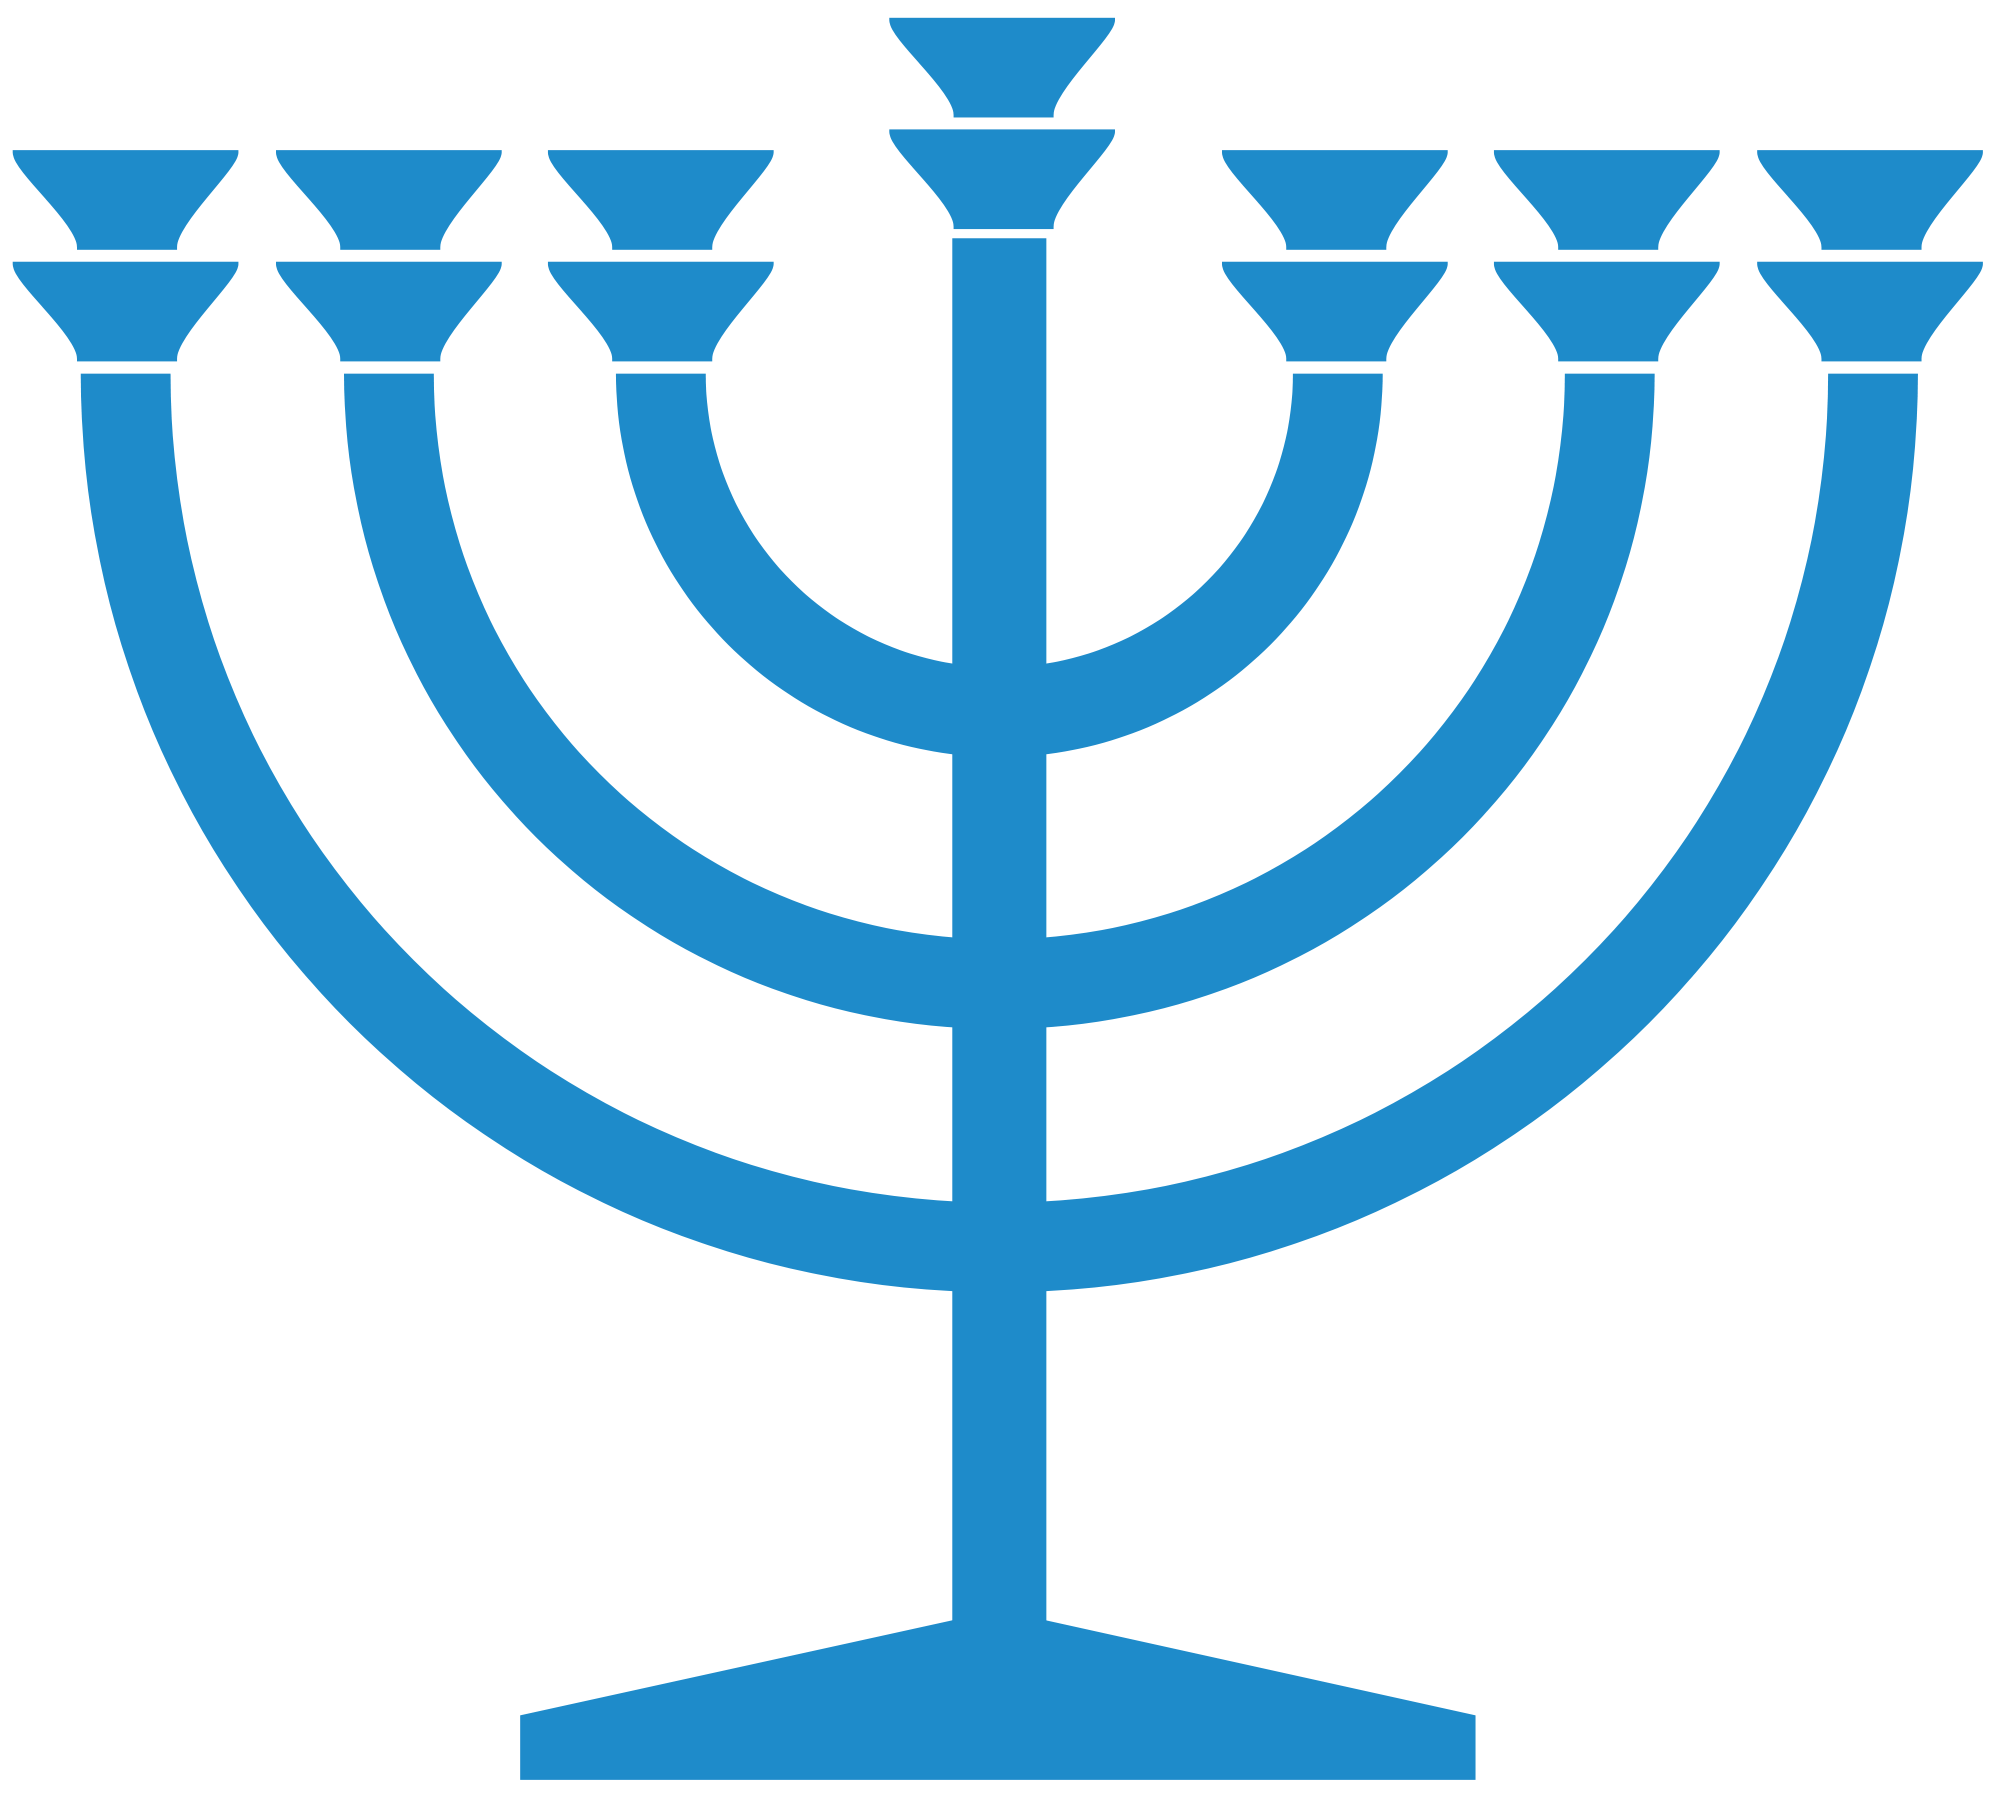 banner royalty free stock File blue wikimedia commons. Menorah clipart svg.